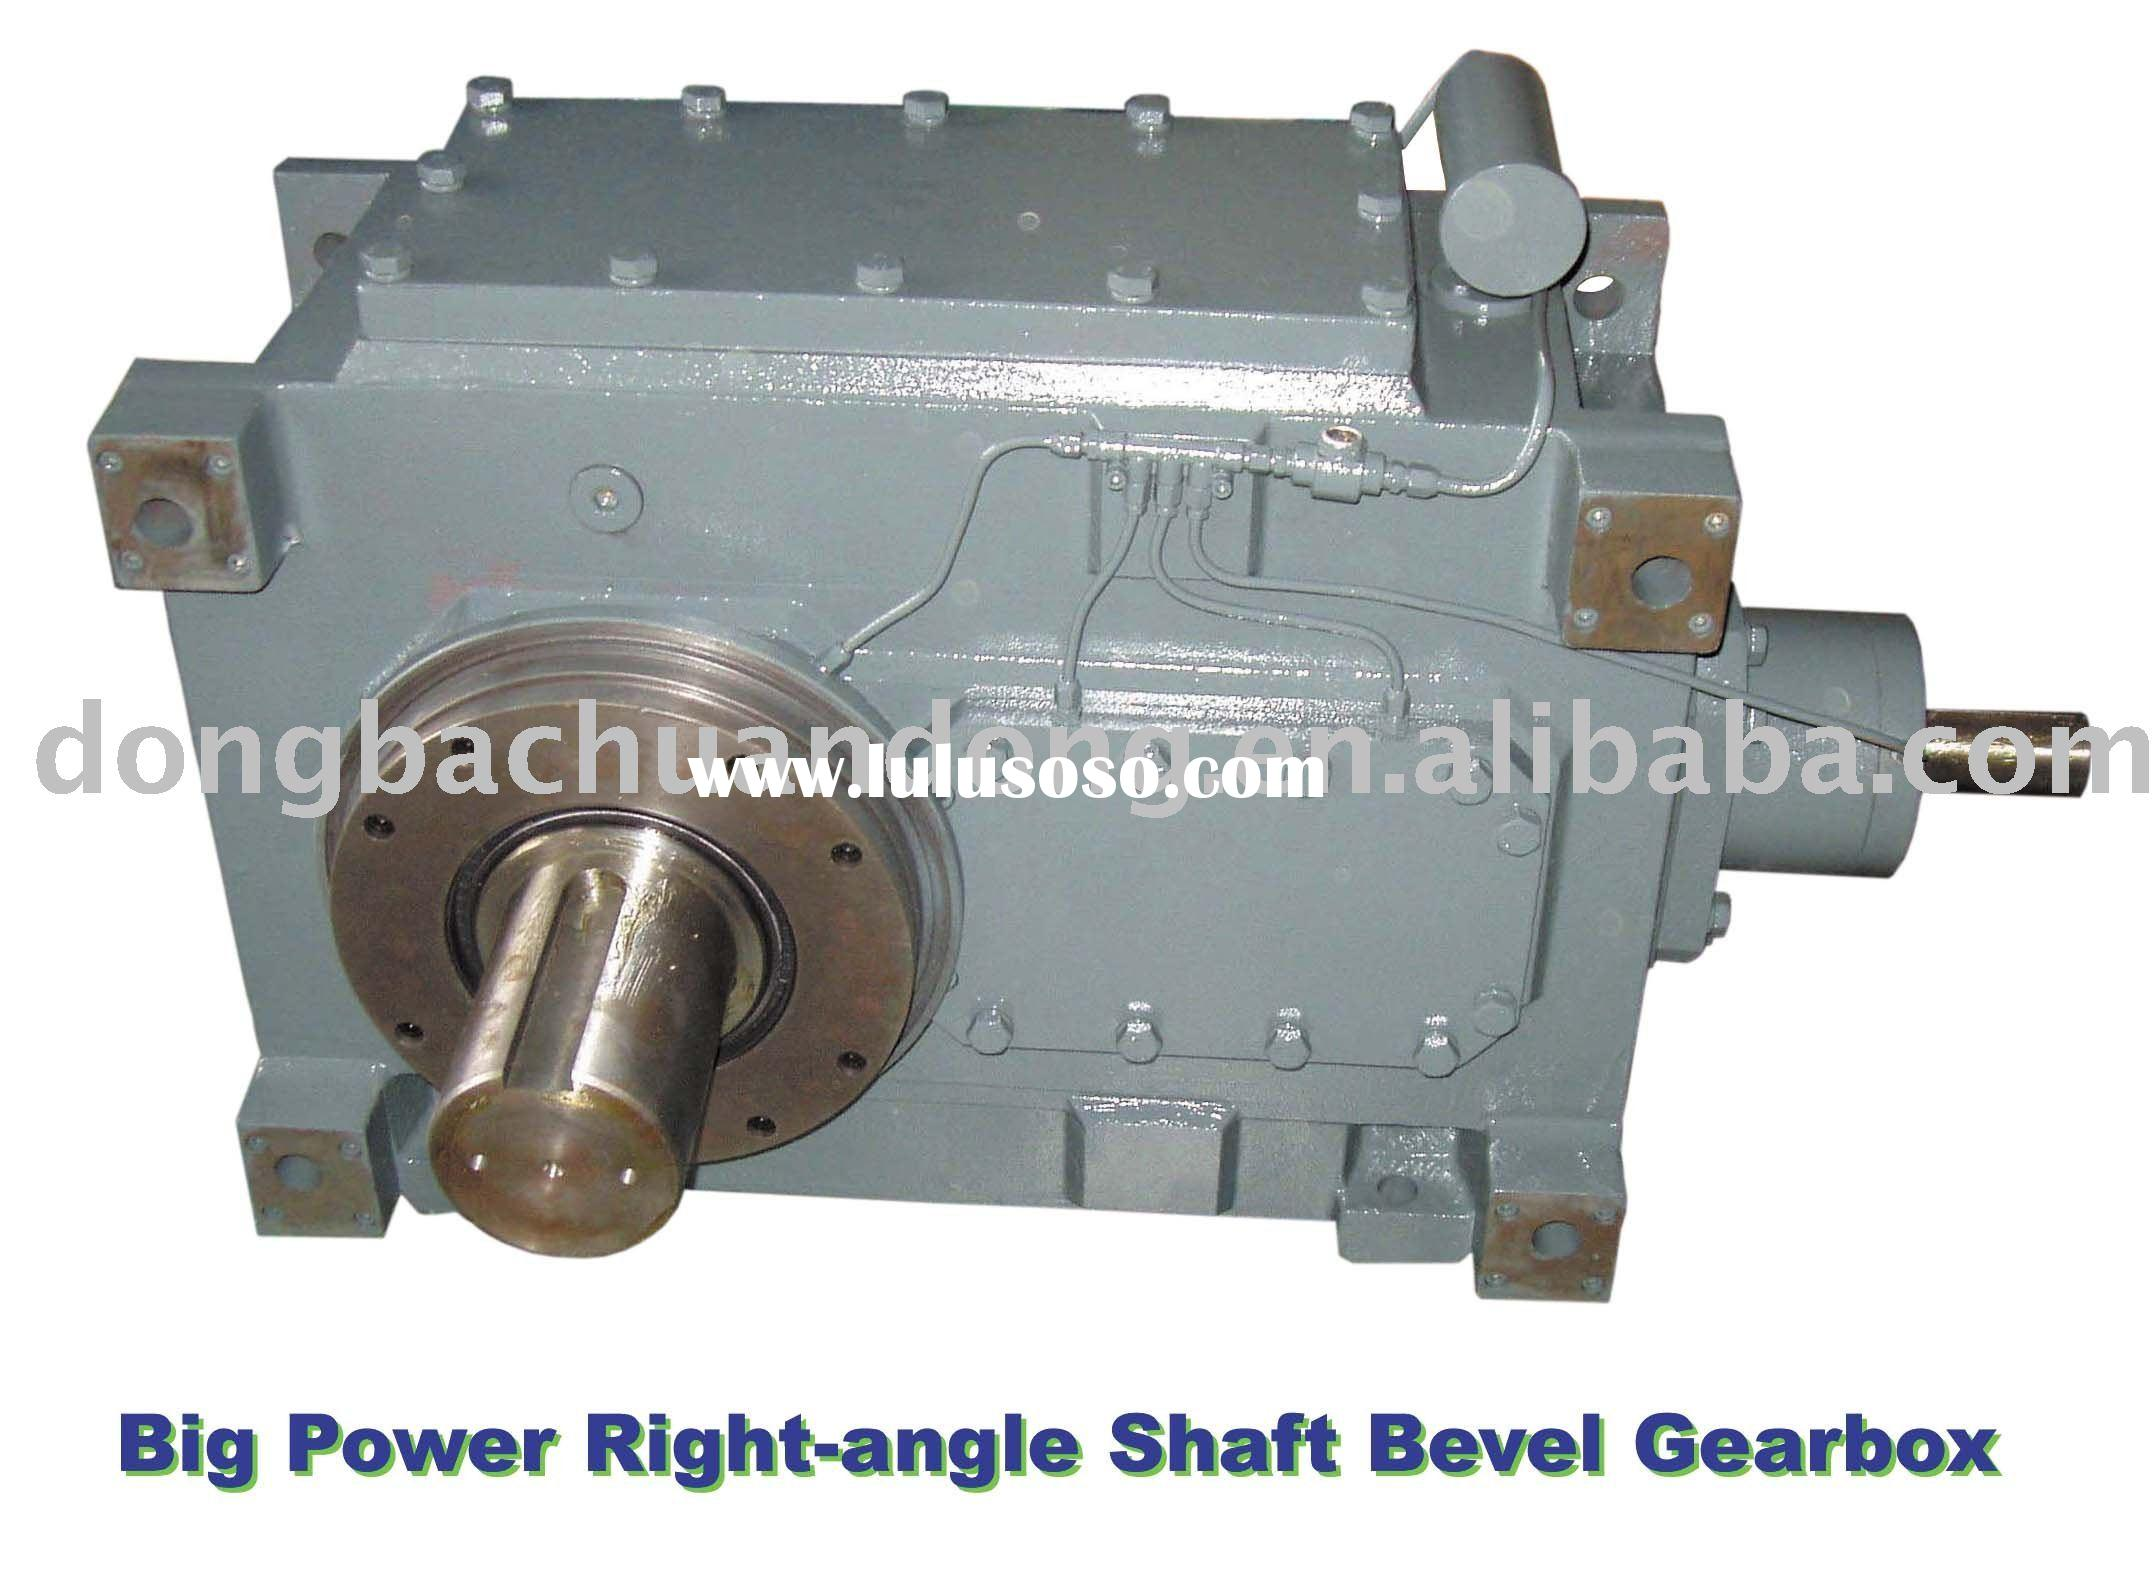 Gear Box(Right-angle Shafts & Spiral Bevel Gear Reducer